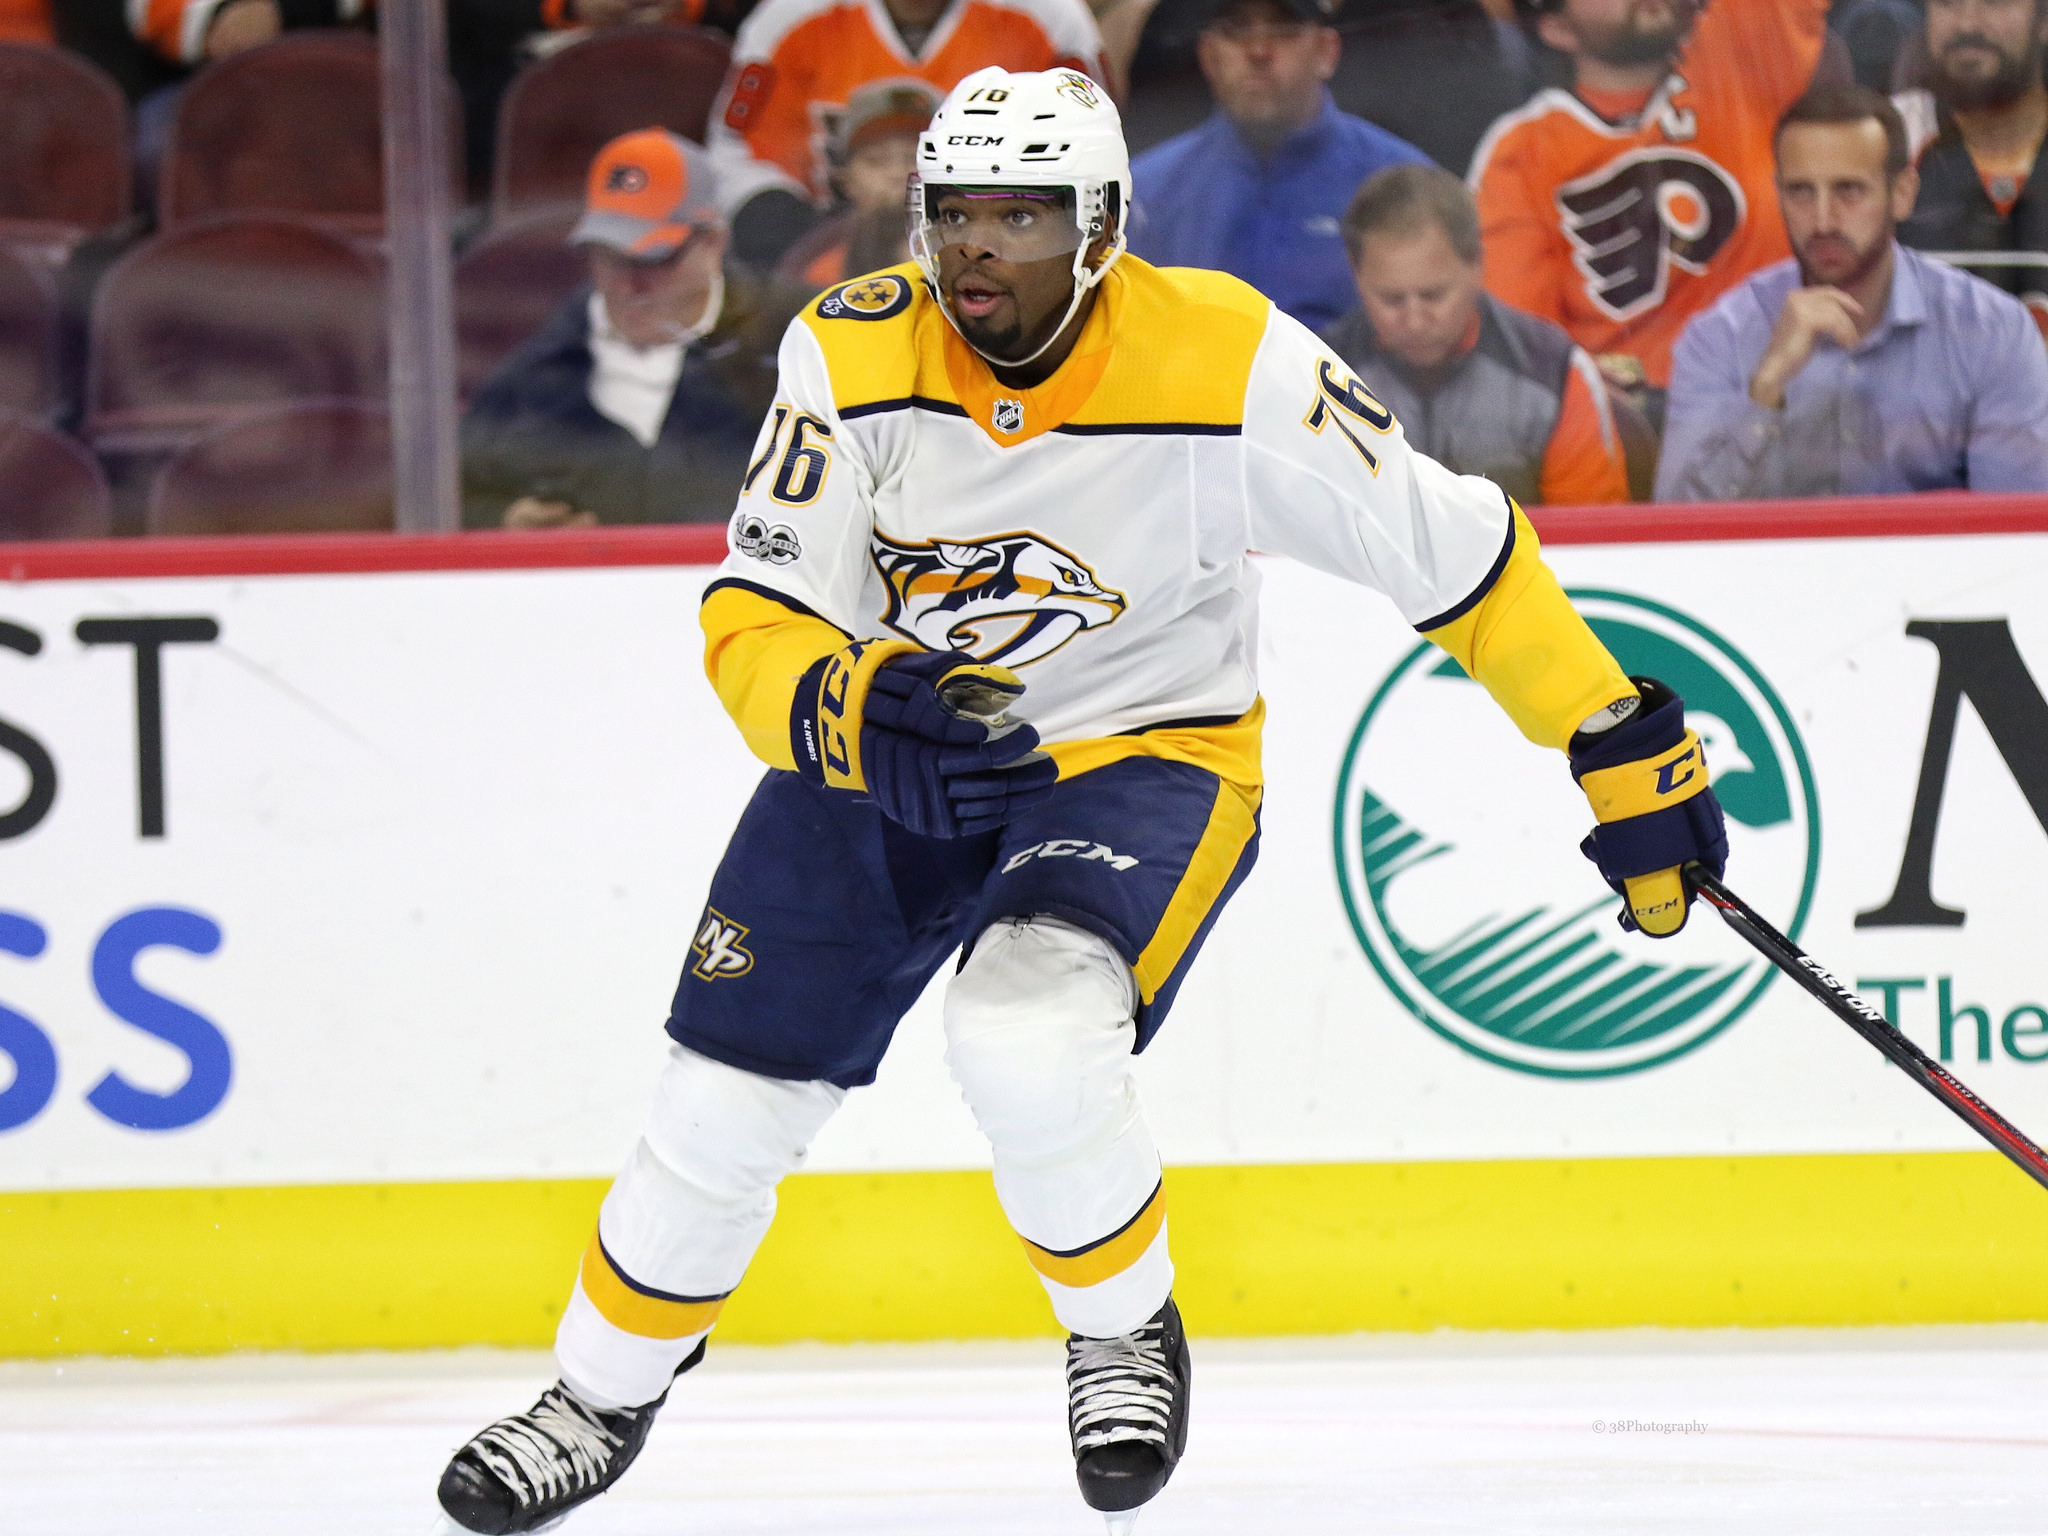 info for 13c28 c8889 New Jersey Devils Acquire P.K. Subban From Nashville Predators